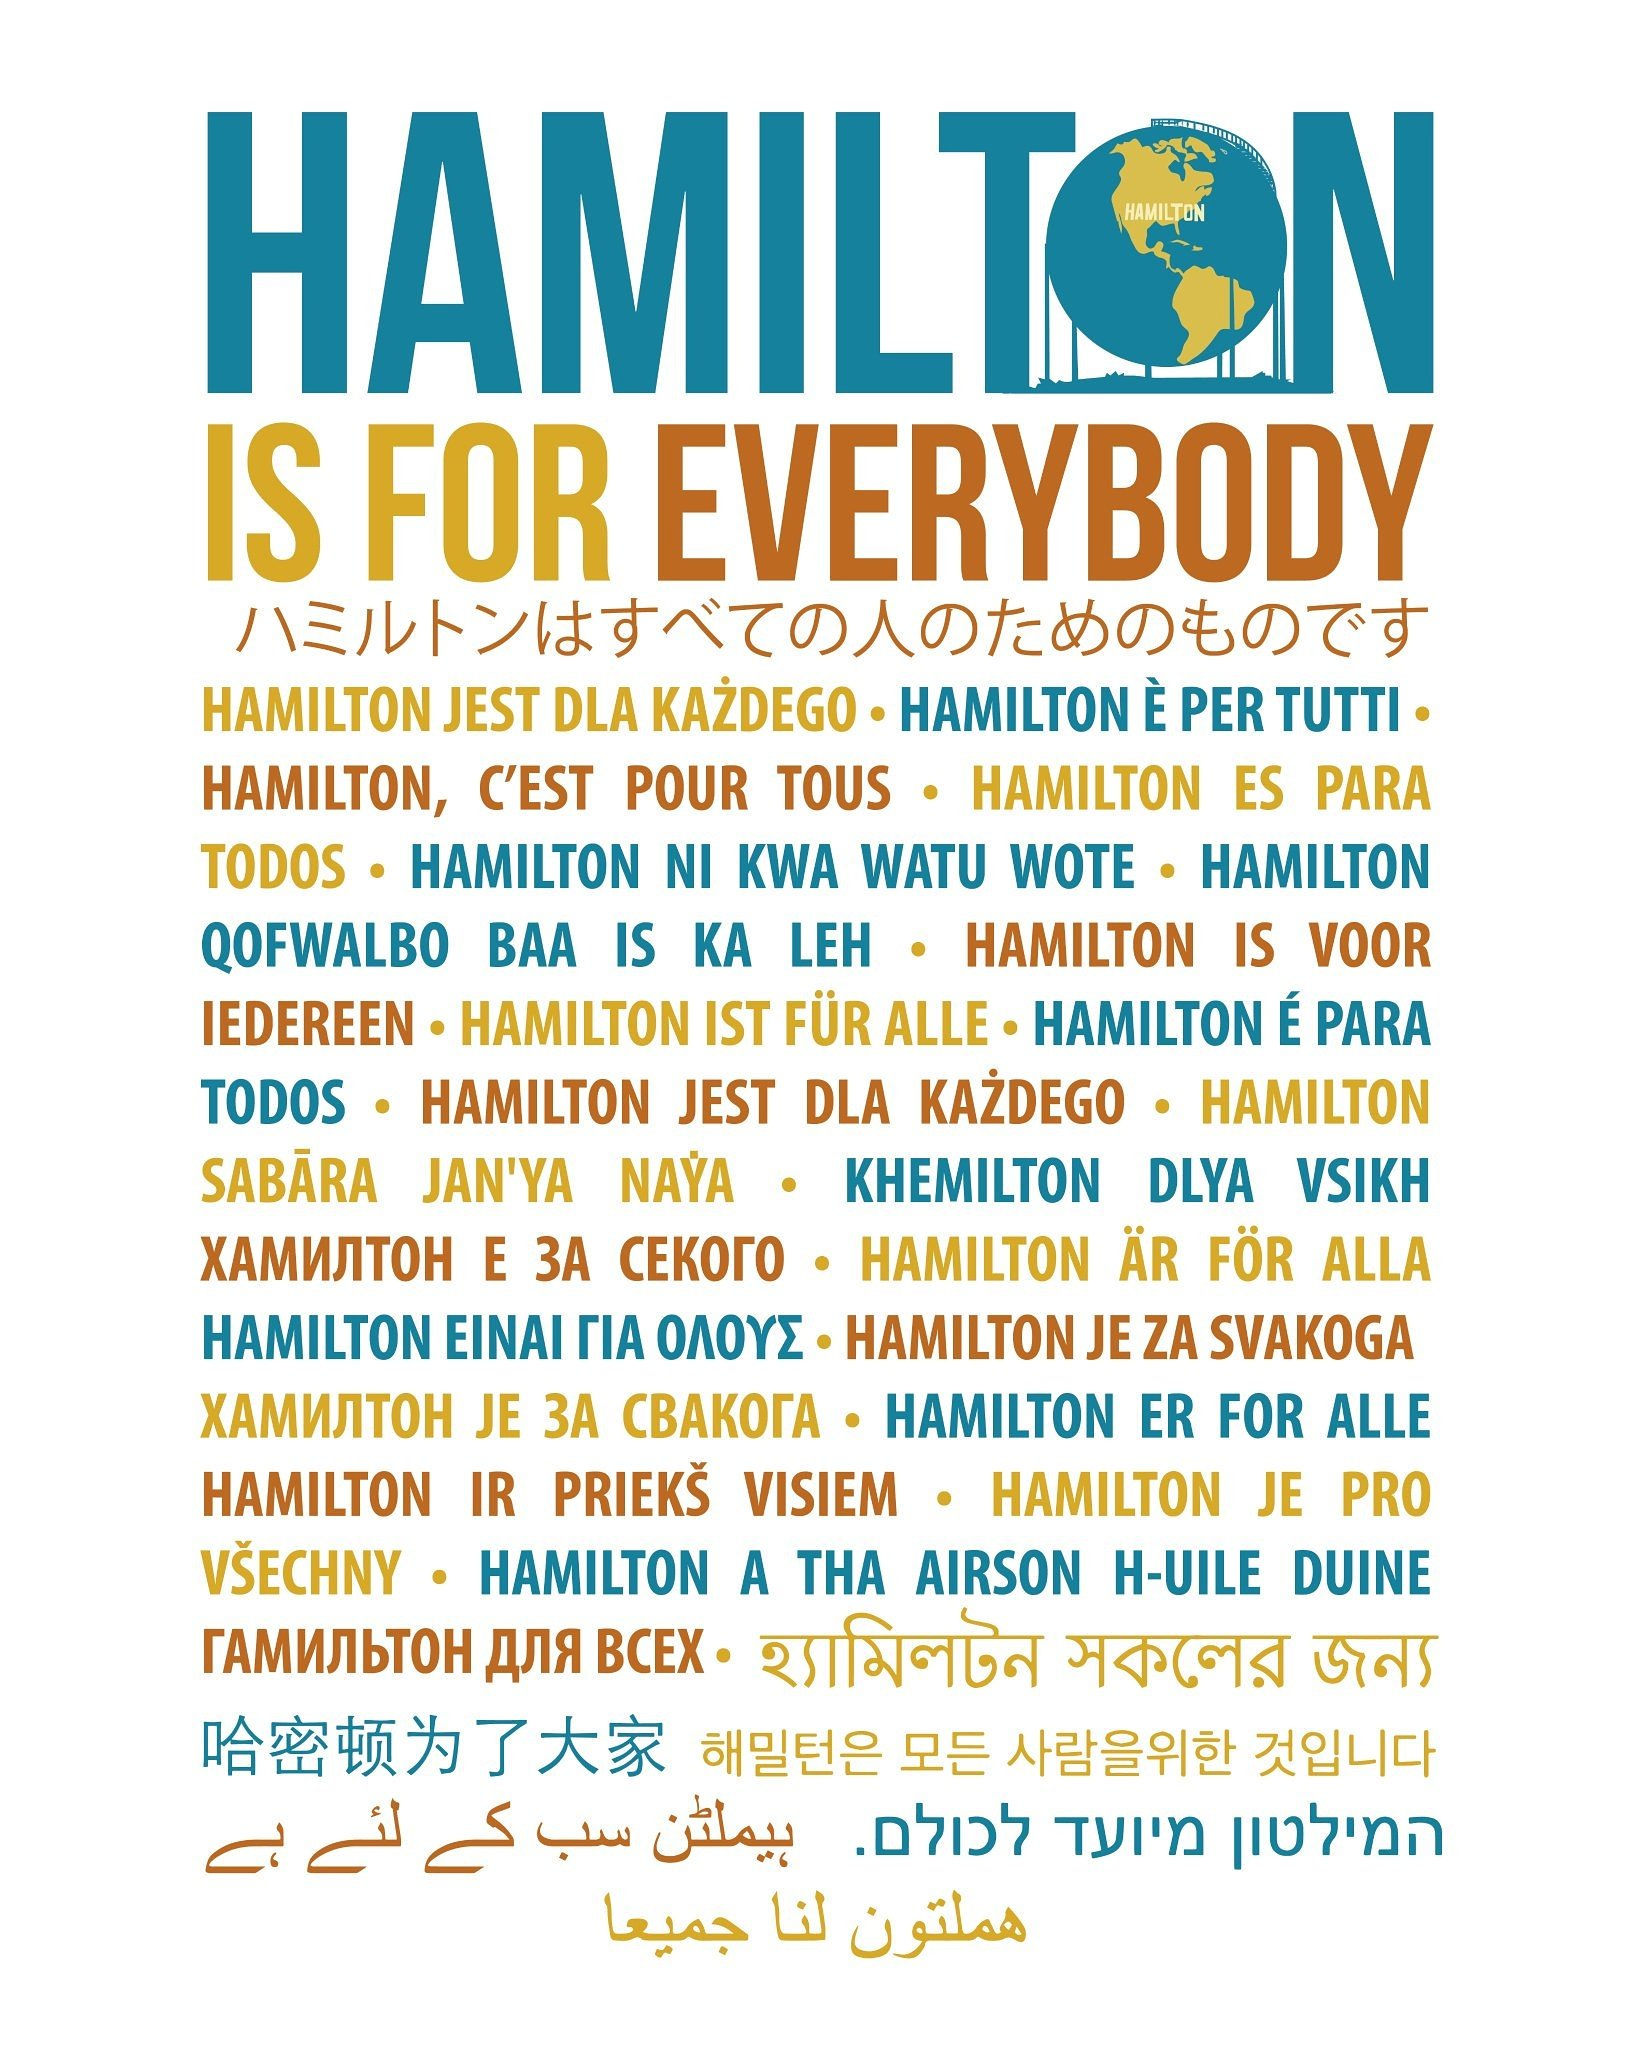 hamilton is for everybody